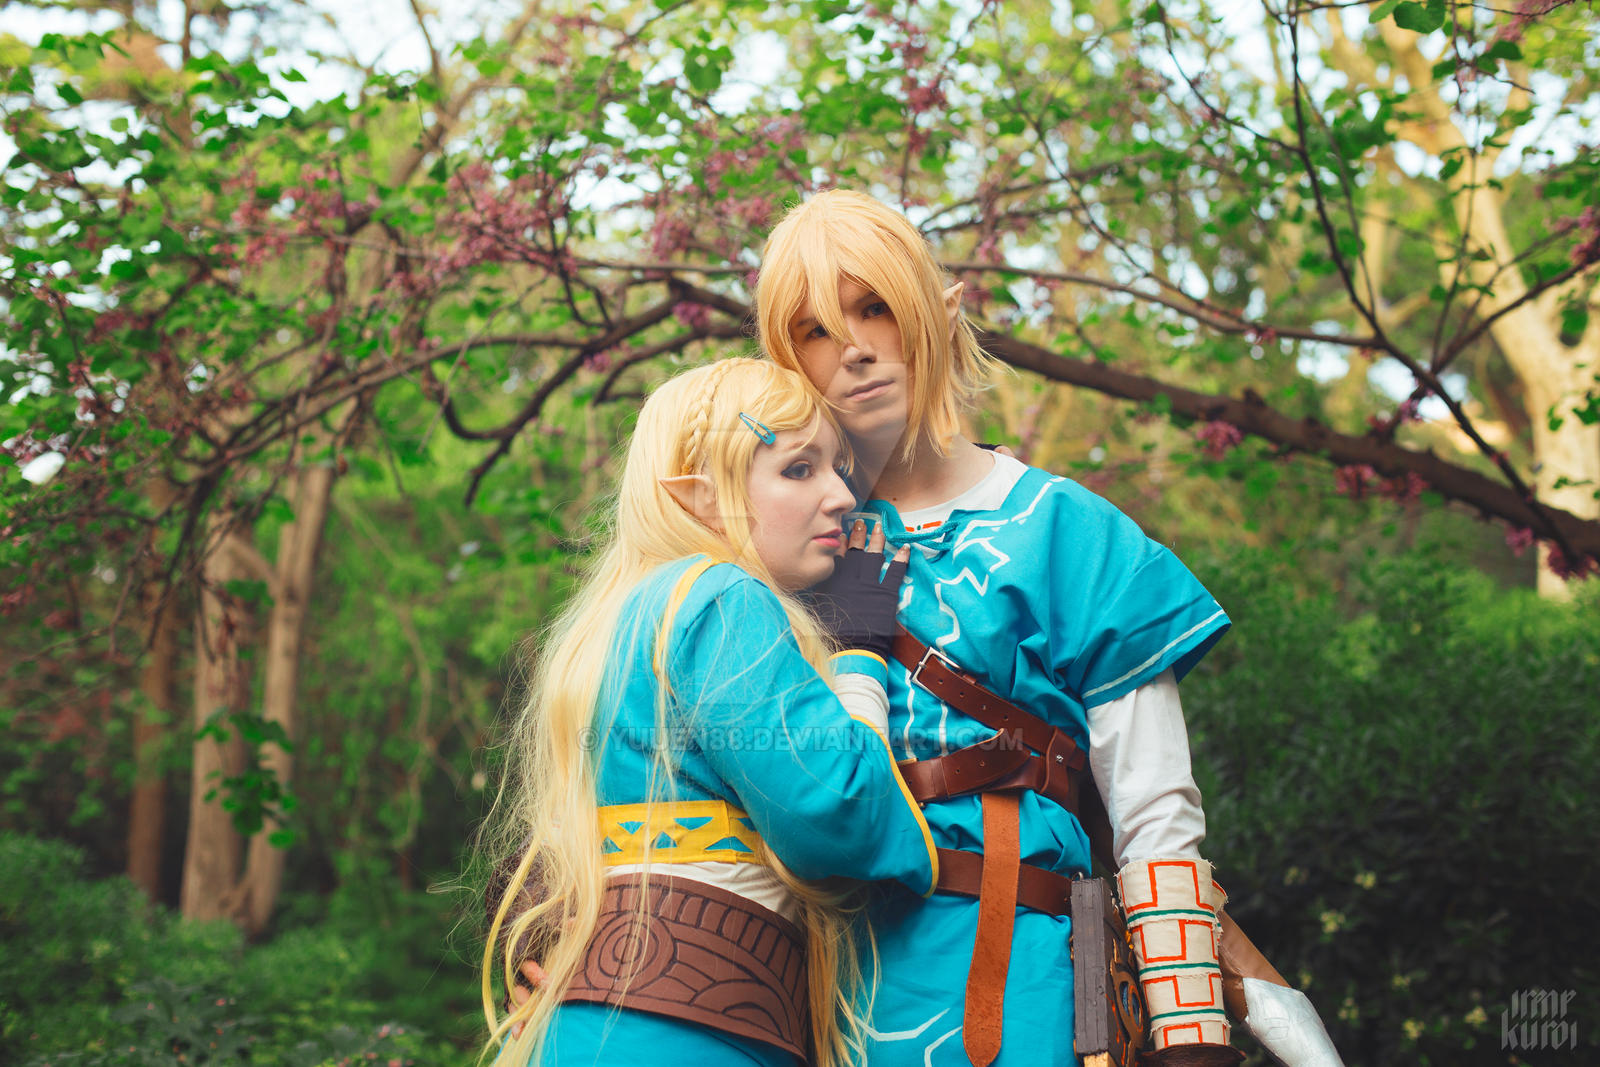 Zelda And Link Zelda Breath Of The Wild Cosplay By Yuuen88